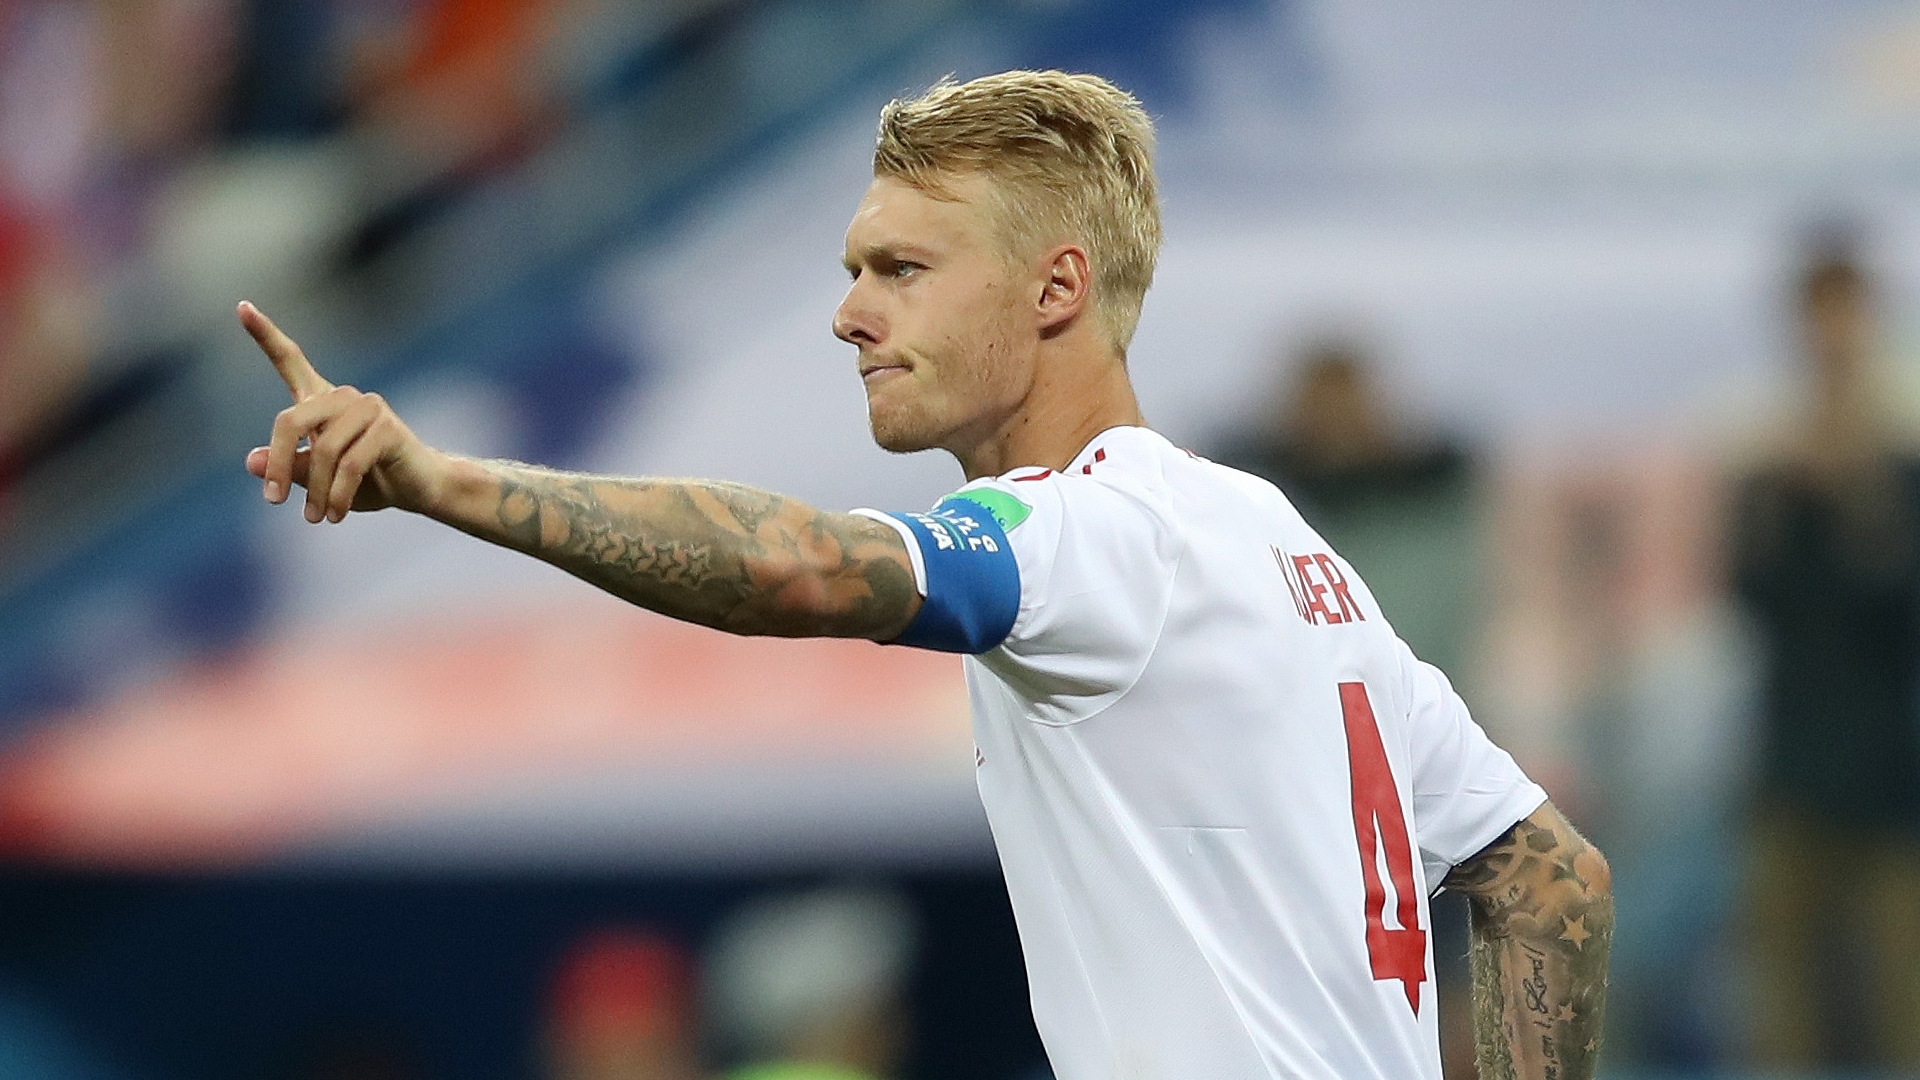 'Milan has always been special to me' – Kjaer feels privileged to make San Siro switch permanent